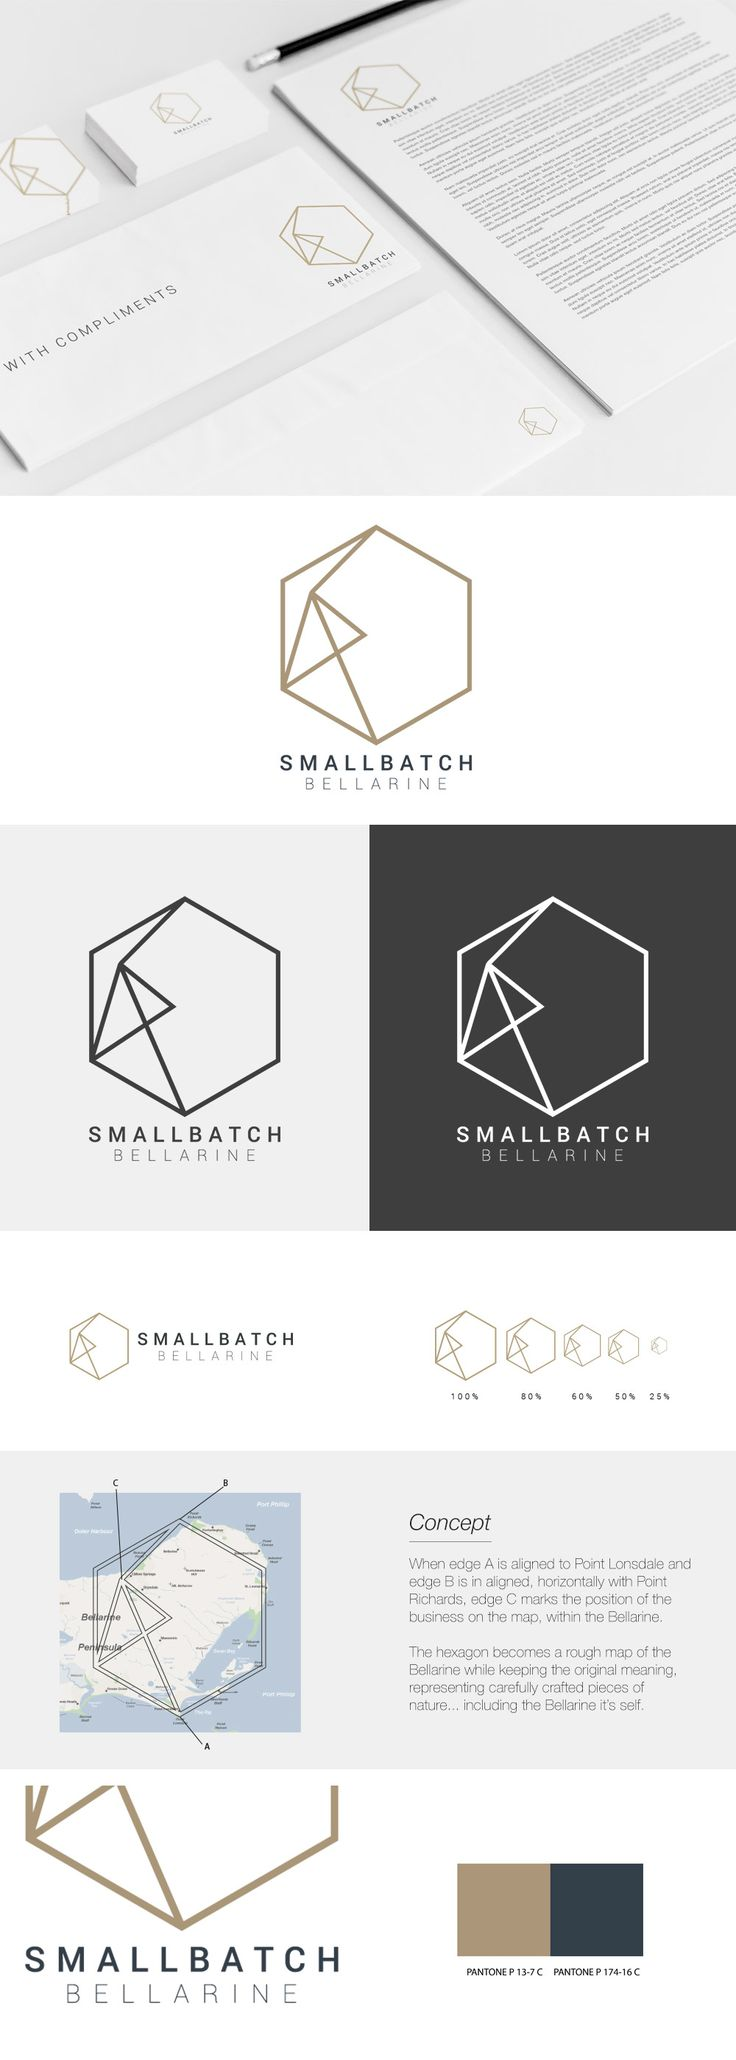 A start-up focusing on distribution of good, honest and local produce and wines. Their logo brief was specific in that the hexagon represents carefully crafted pieces of nature. To ensure the abstract nature of the brand didn't become too generic with cur